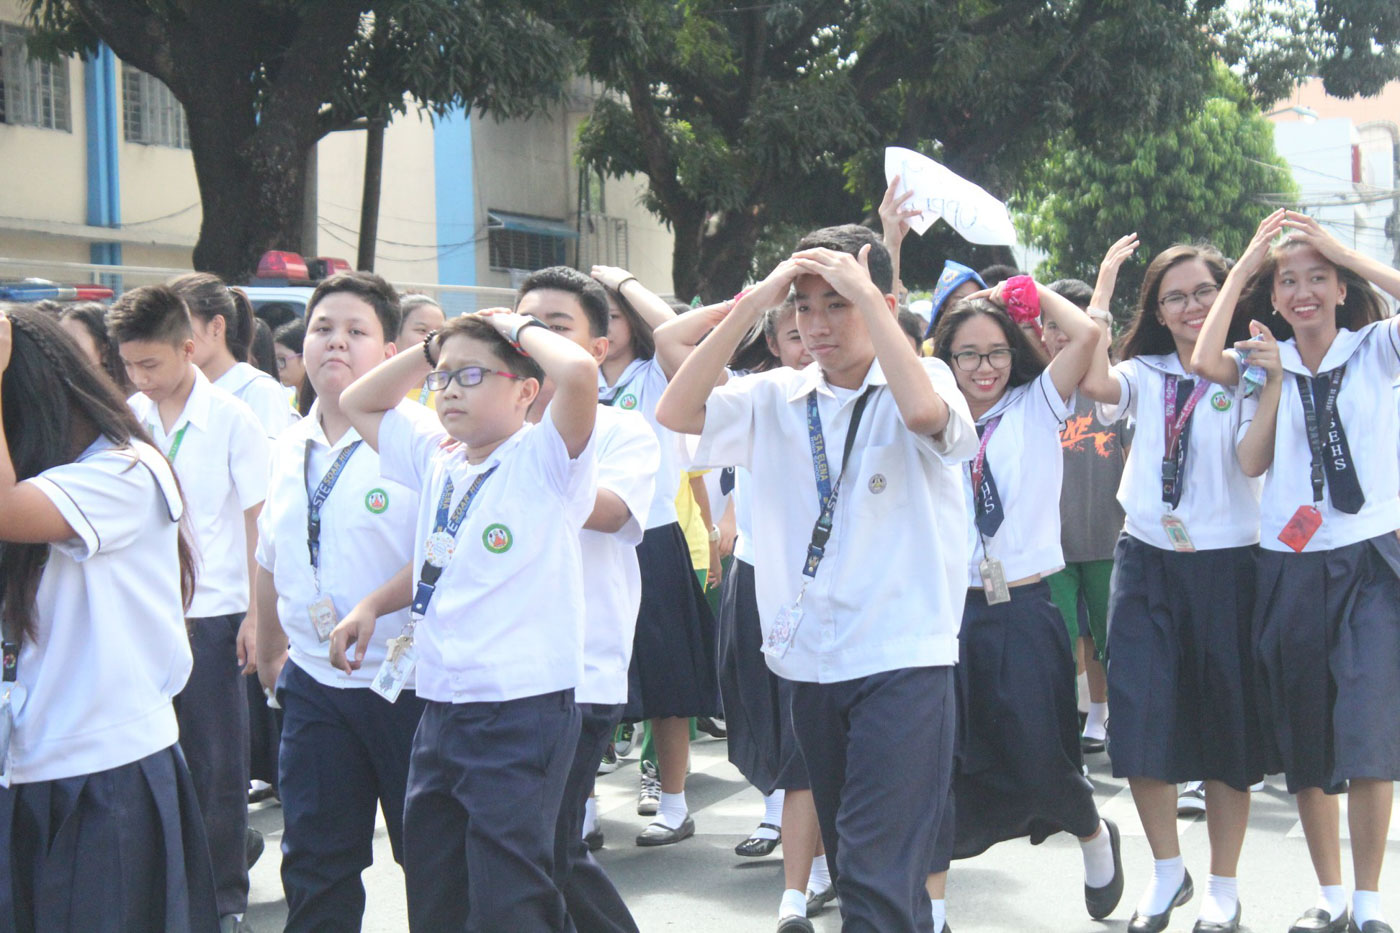 PARTICIPATION. Students of Sta Elena High School 'evacuate' during a monthly earthquake drills Photo courtesy of Giovanna Jean Nesas